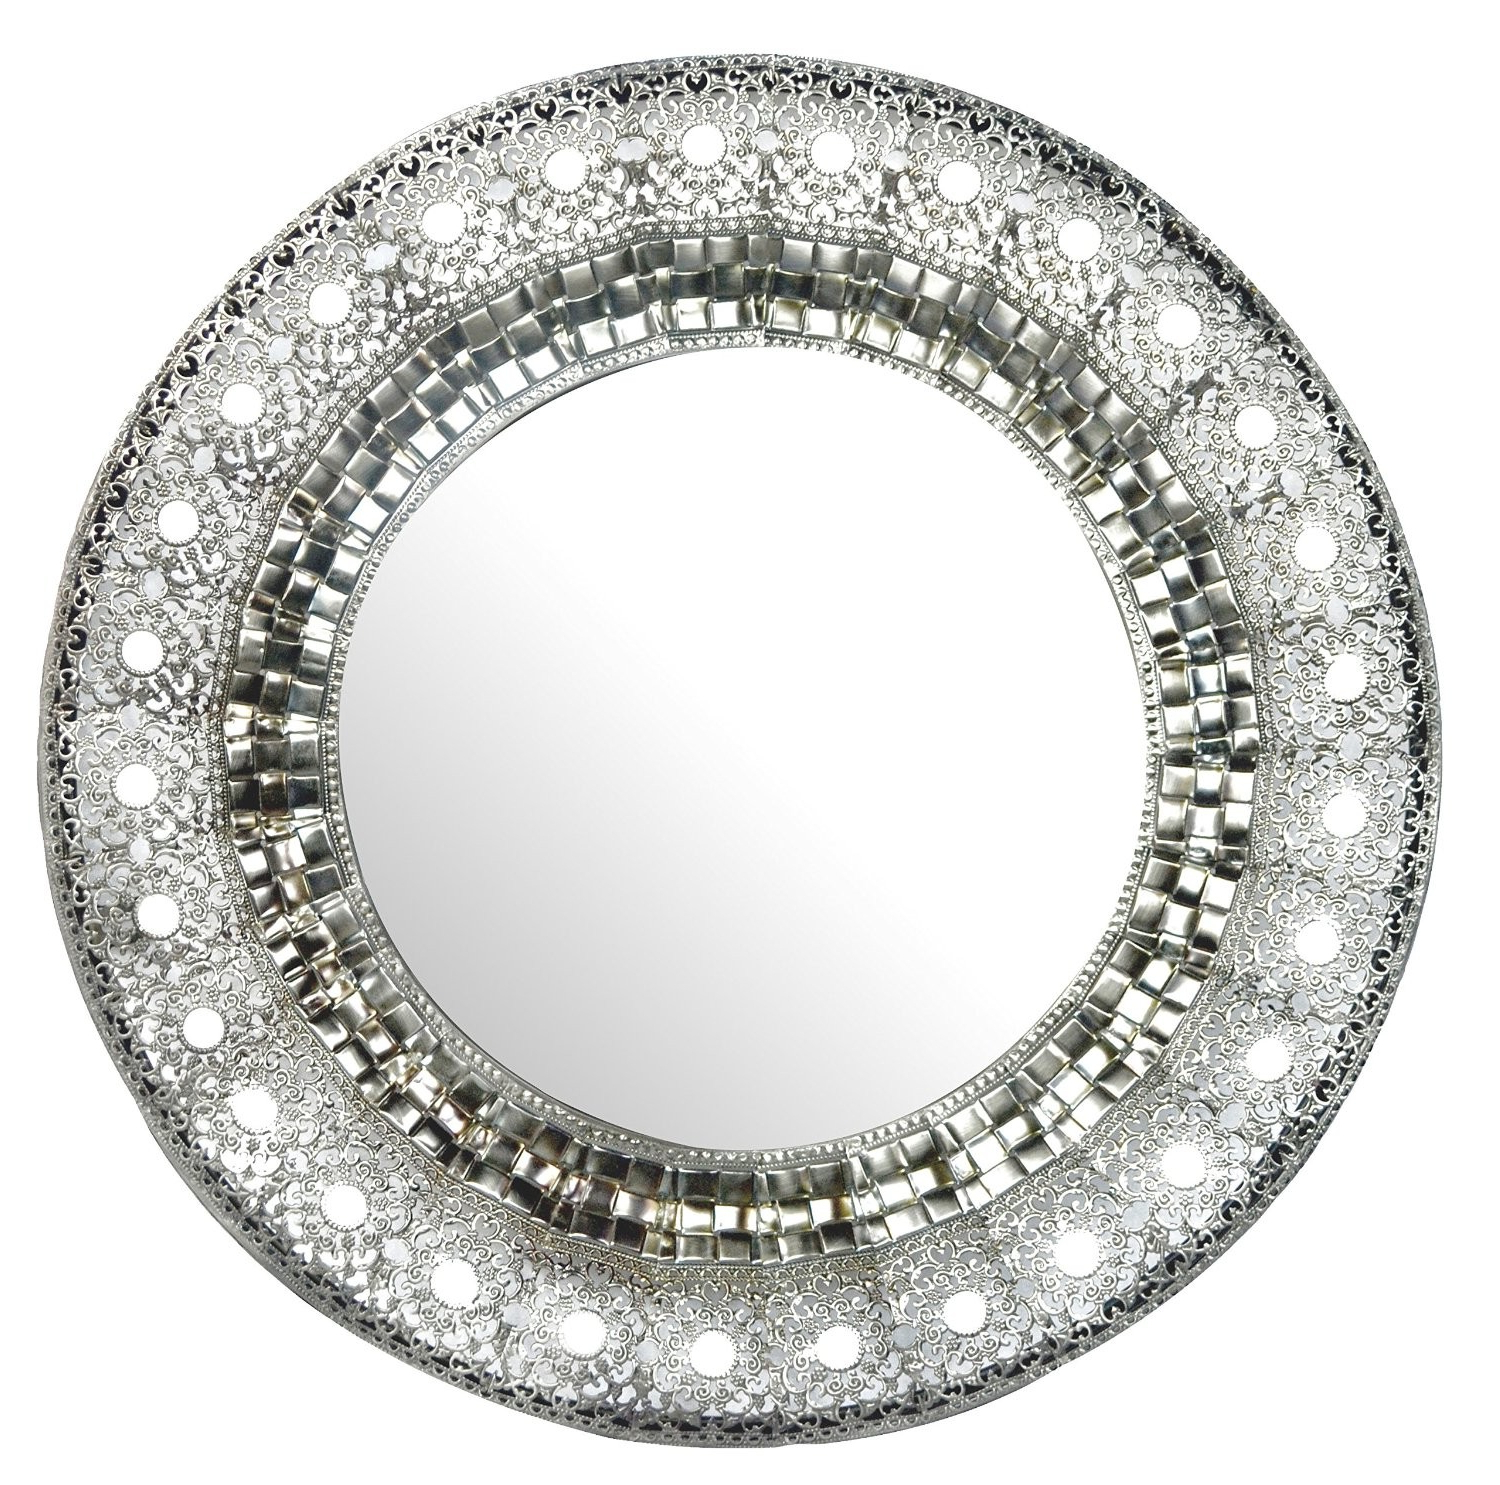 Oriental Round Silver Metal Beveled Wall Mirror, Decorative Mirror For Most Recent Round Beveled Wall Mirrors (View 16 of 20)